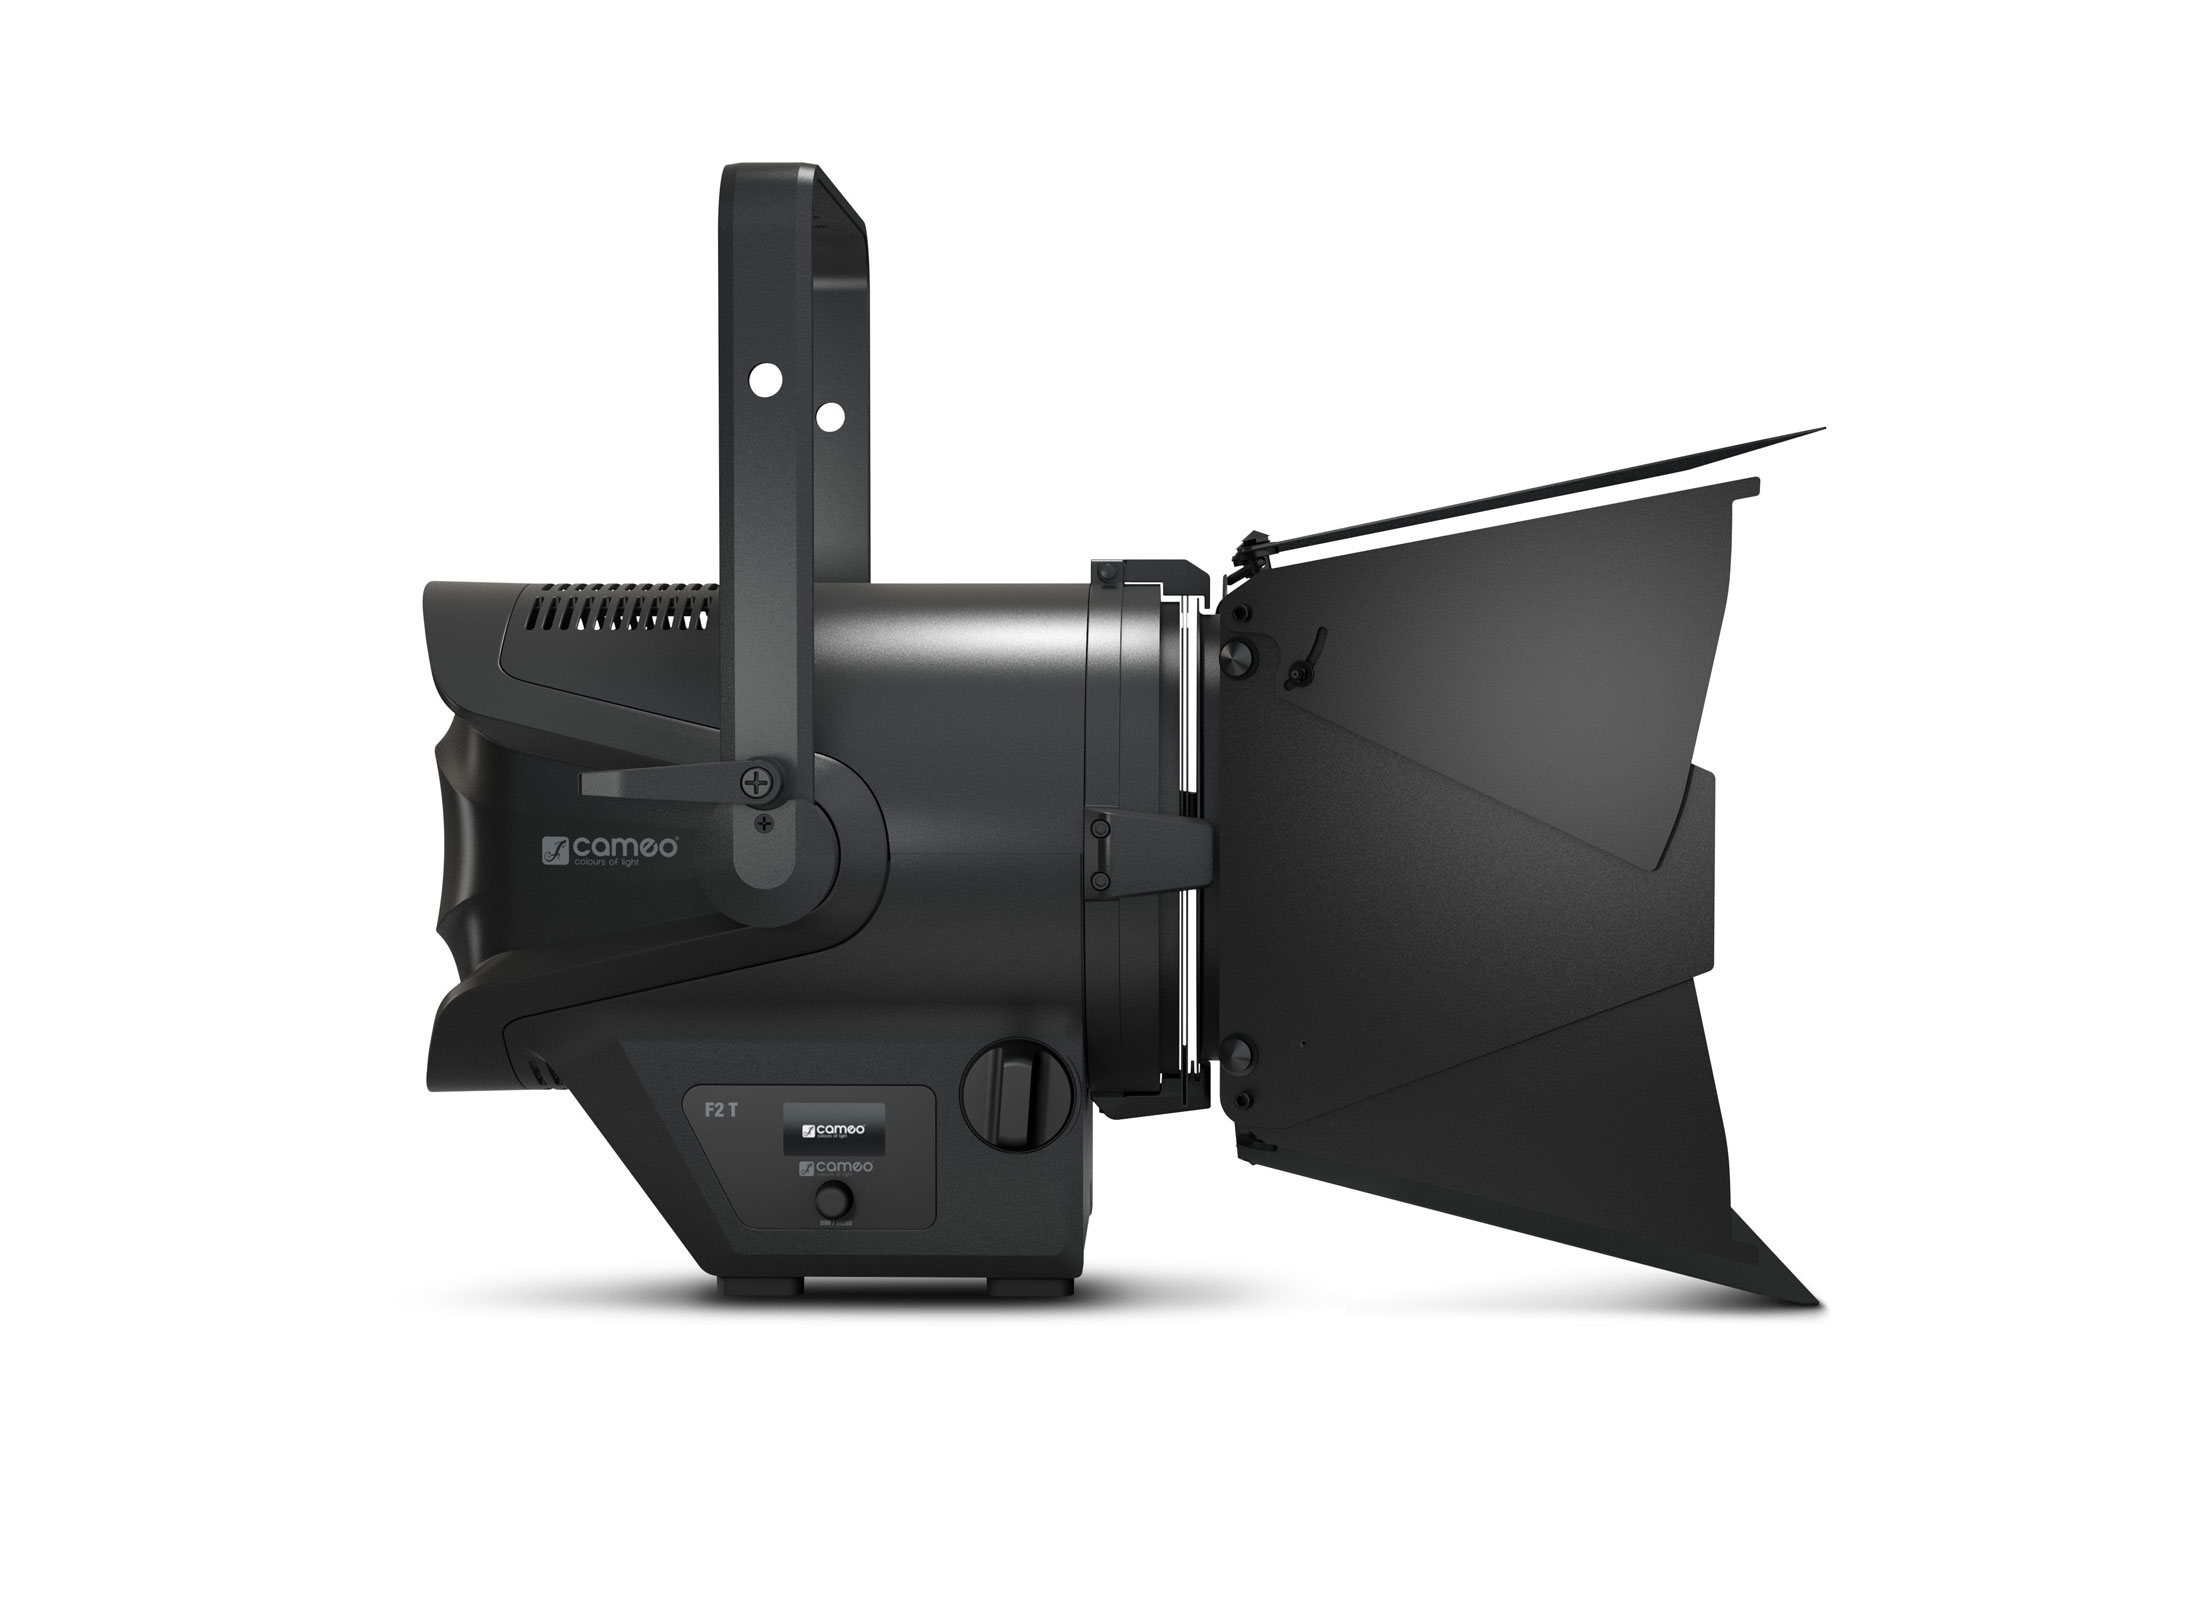 Cameo f d led lens spotlight online at low prices at huss light